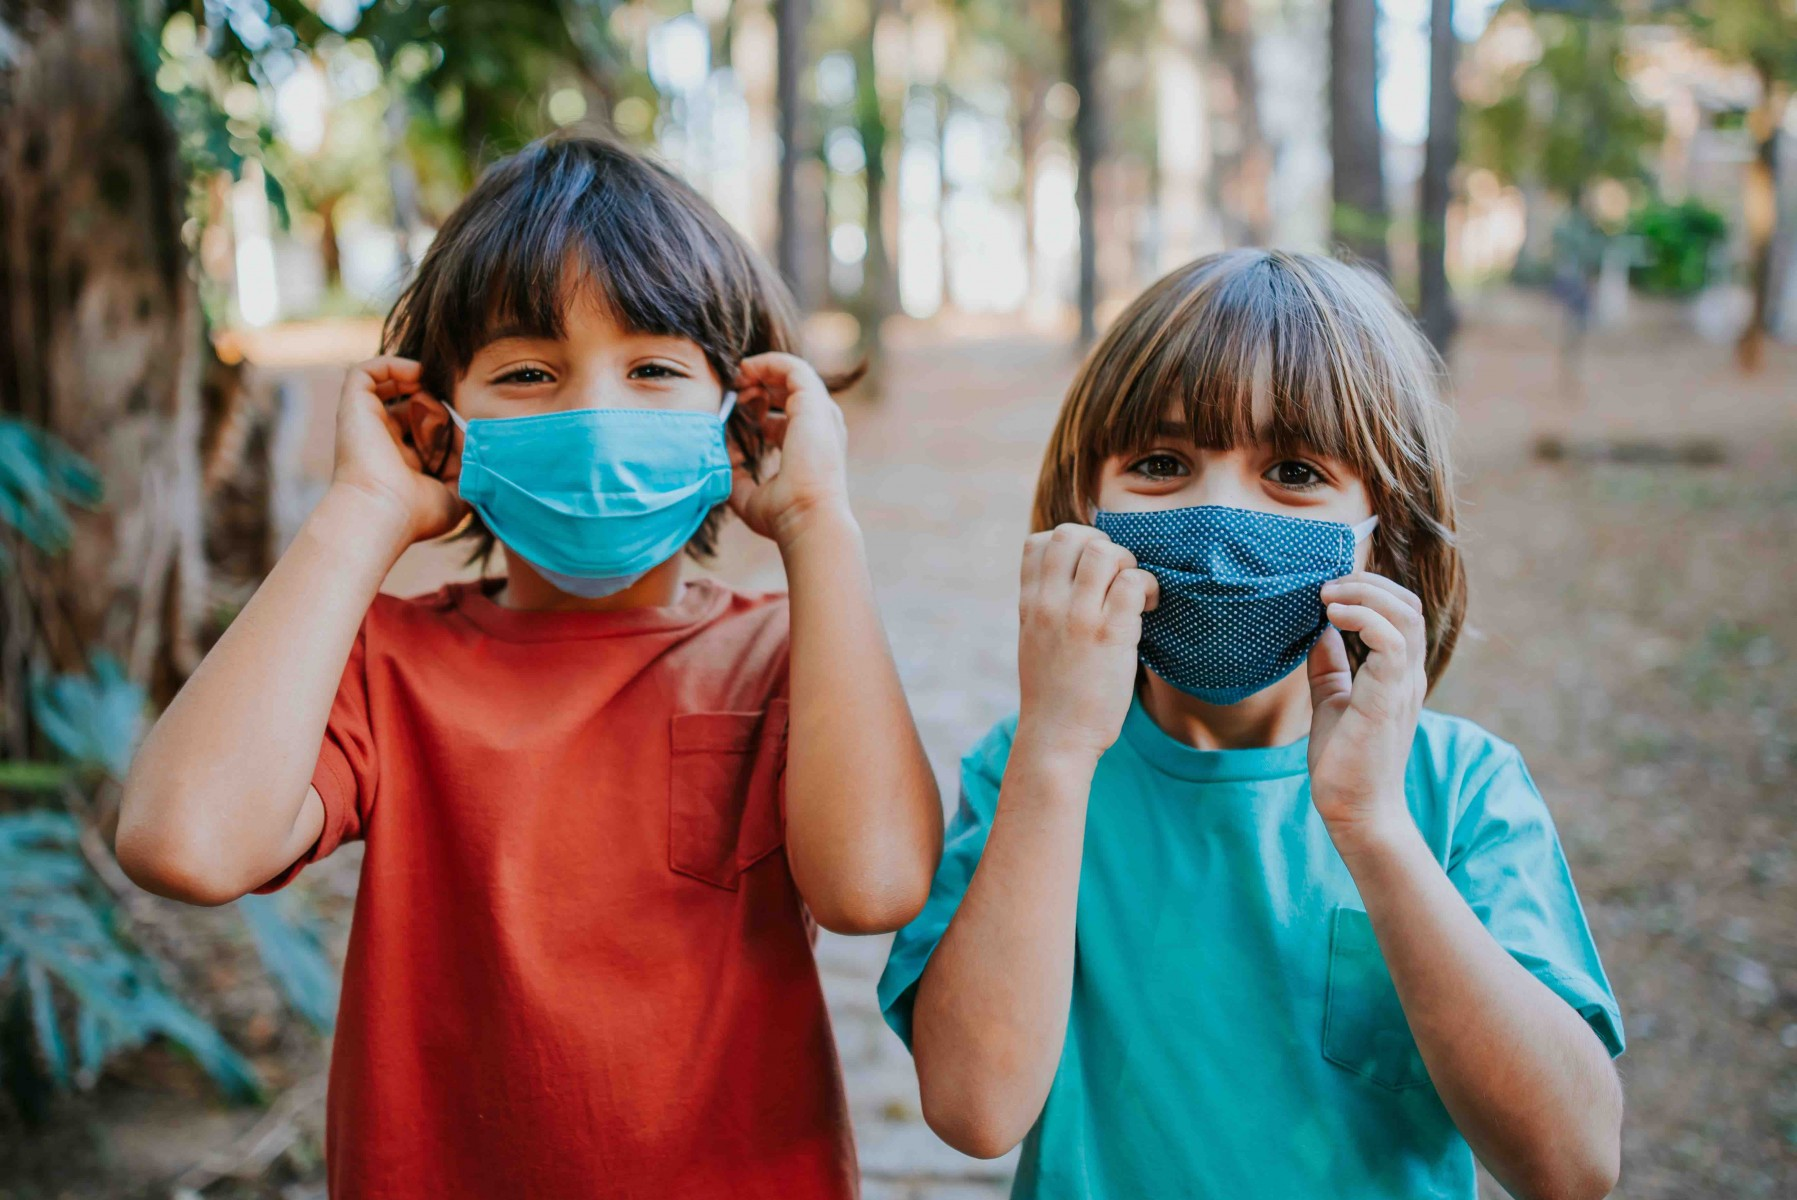 When joining a pandemic learning pod, the key to health and safety is setting firm guidelines, according to Cedars-Sinai pediatricians. Photo by Getty Images.